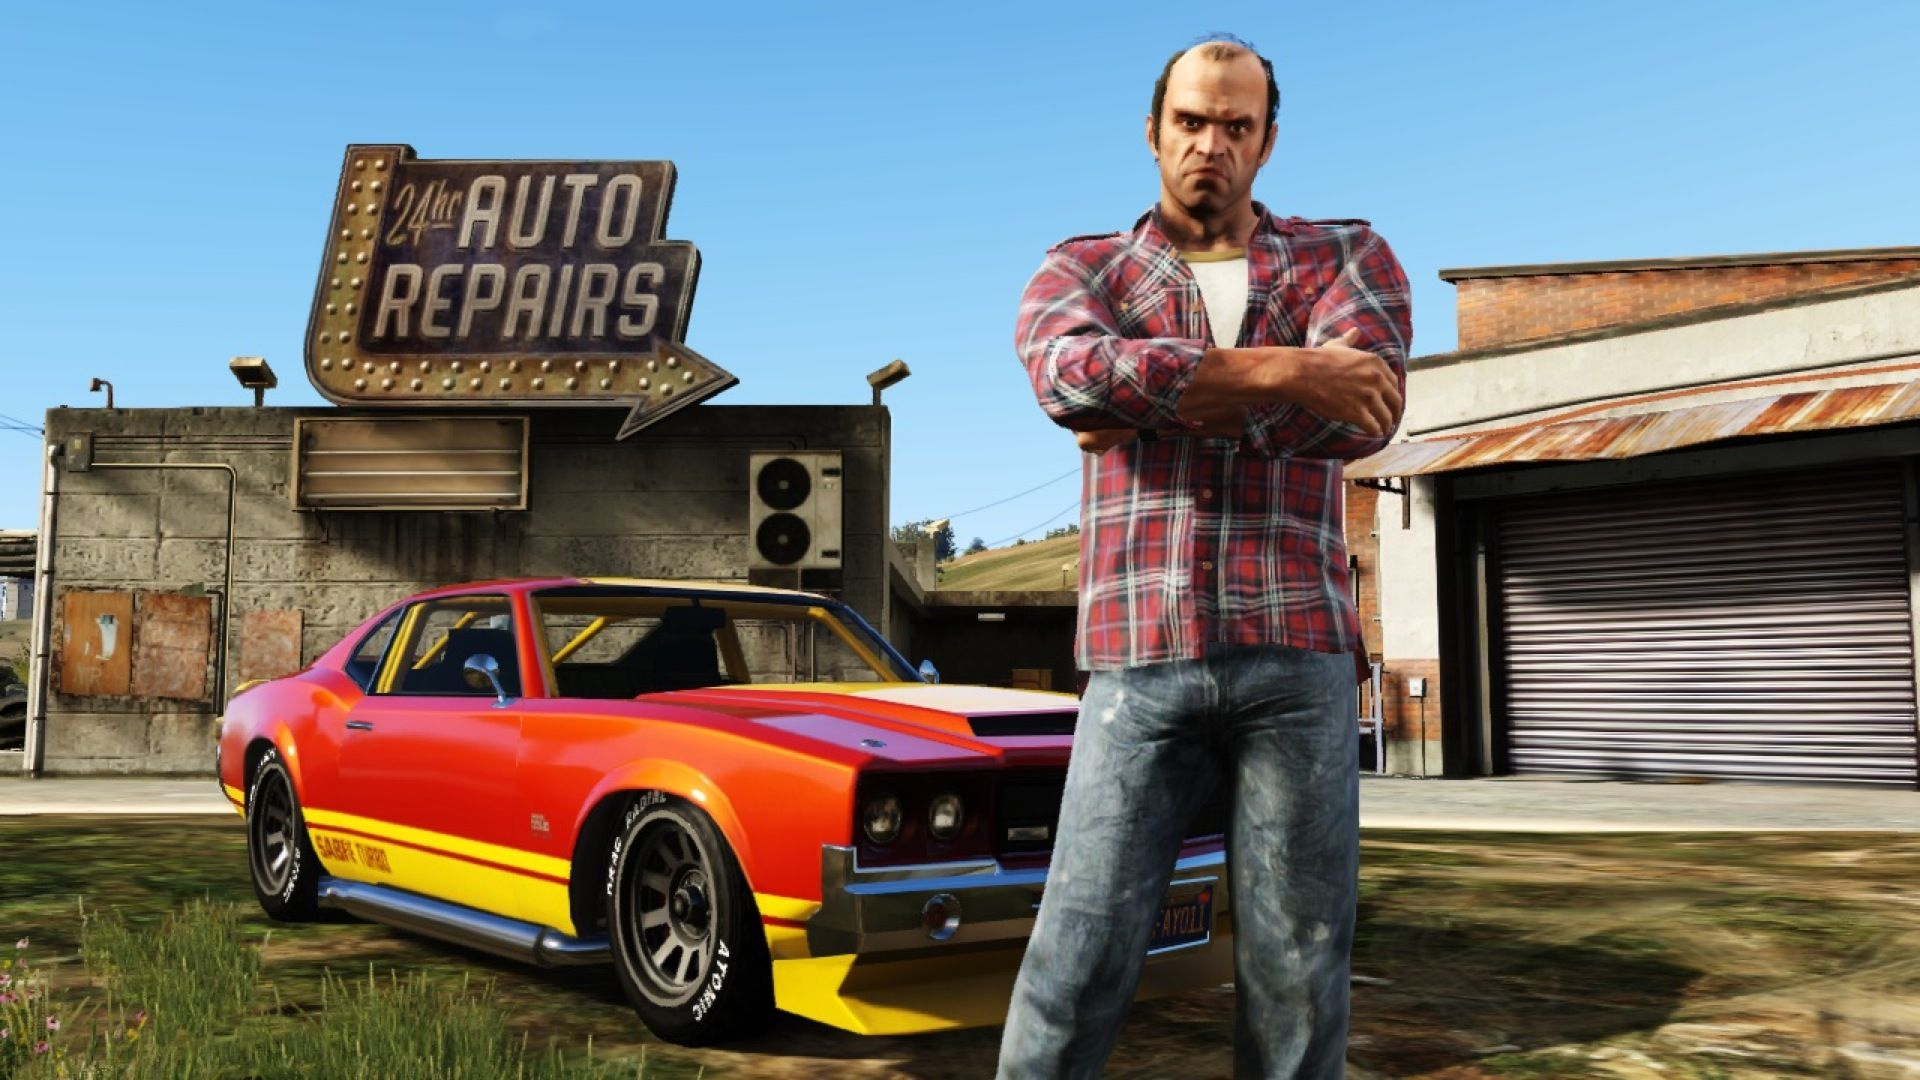 Gta 5 games background desktop Background HD Wallpaper for Desktop 1920x1080